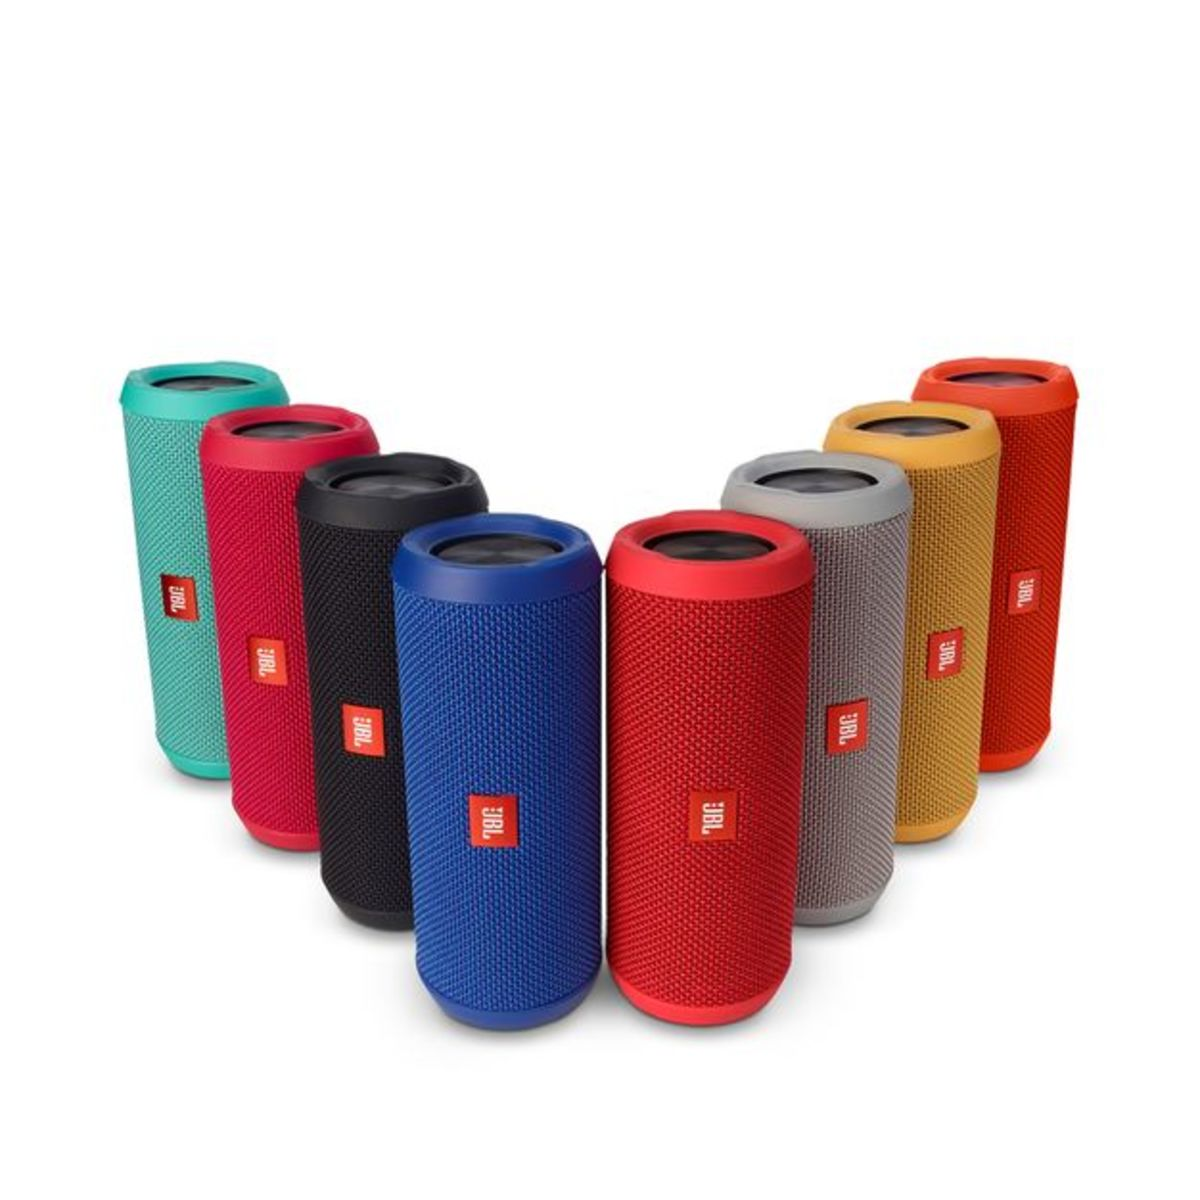 The JBL Flip 3 comes in a variety of colors.